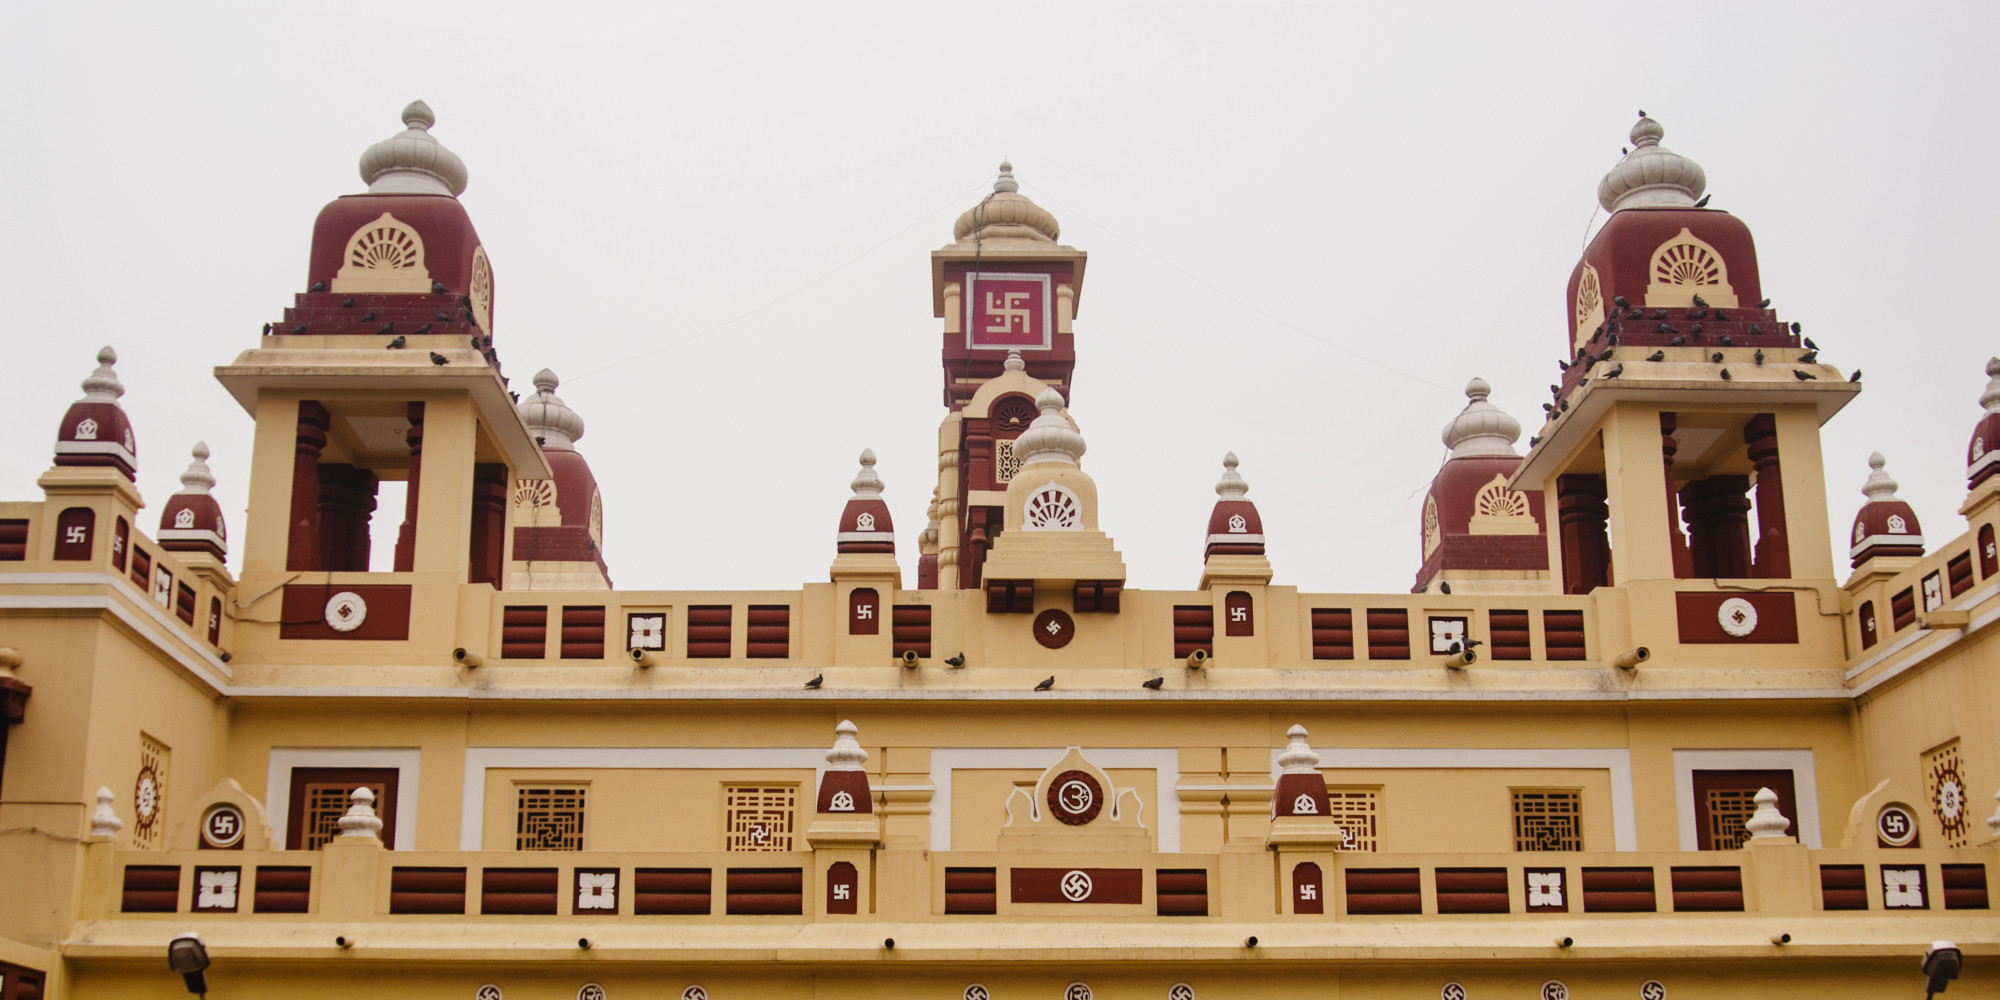 Architectural detail of the Laxminarayan Temple